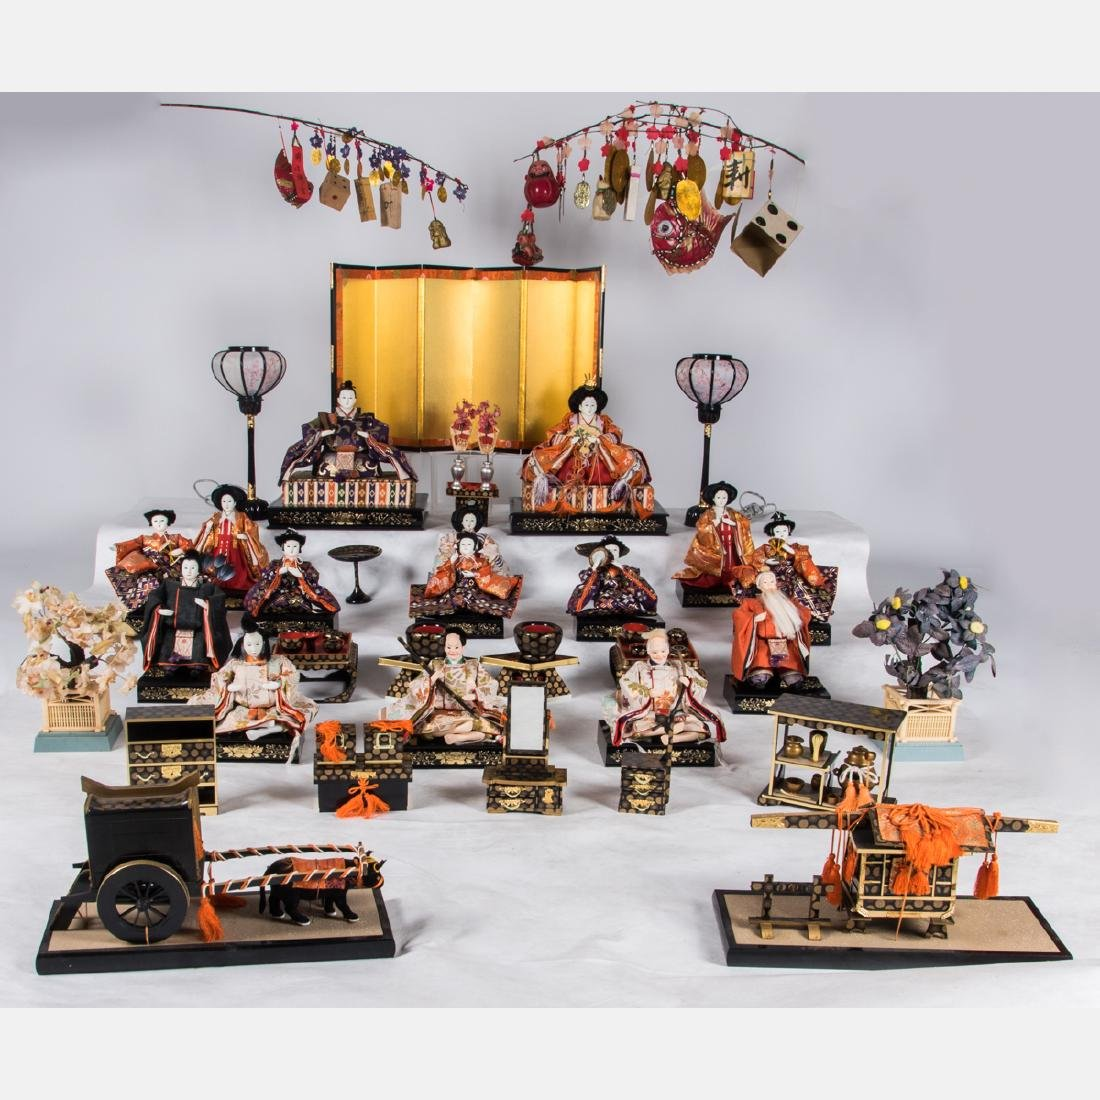 A Group of Japanese Composite Hina Dolls with